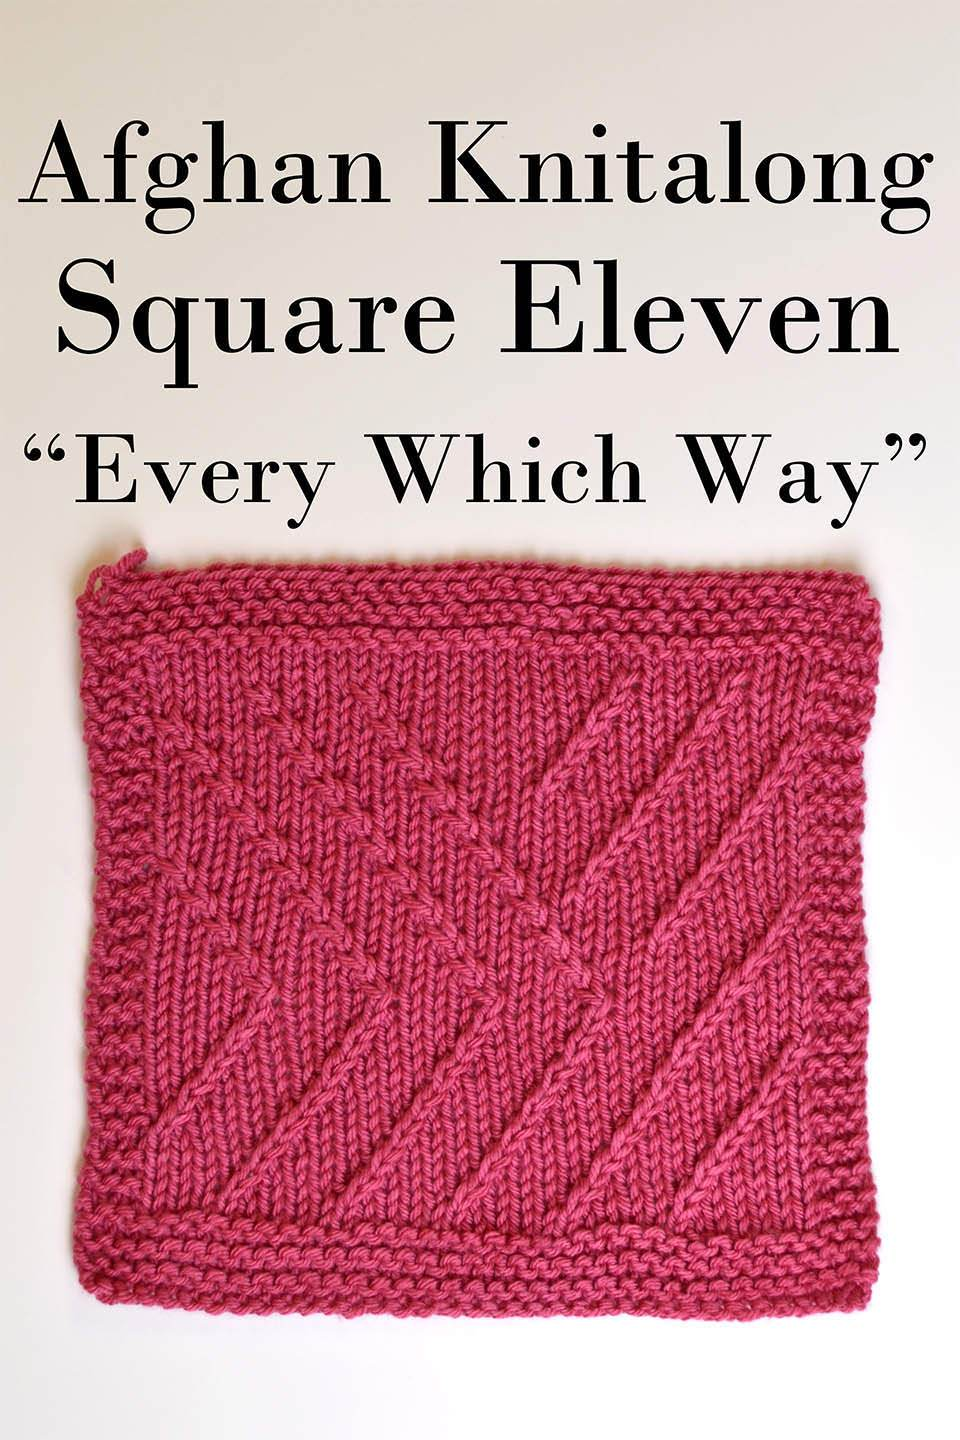 Afghan Knitalong Square 11 - Every Which Way Pattern Universal Yarn